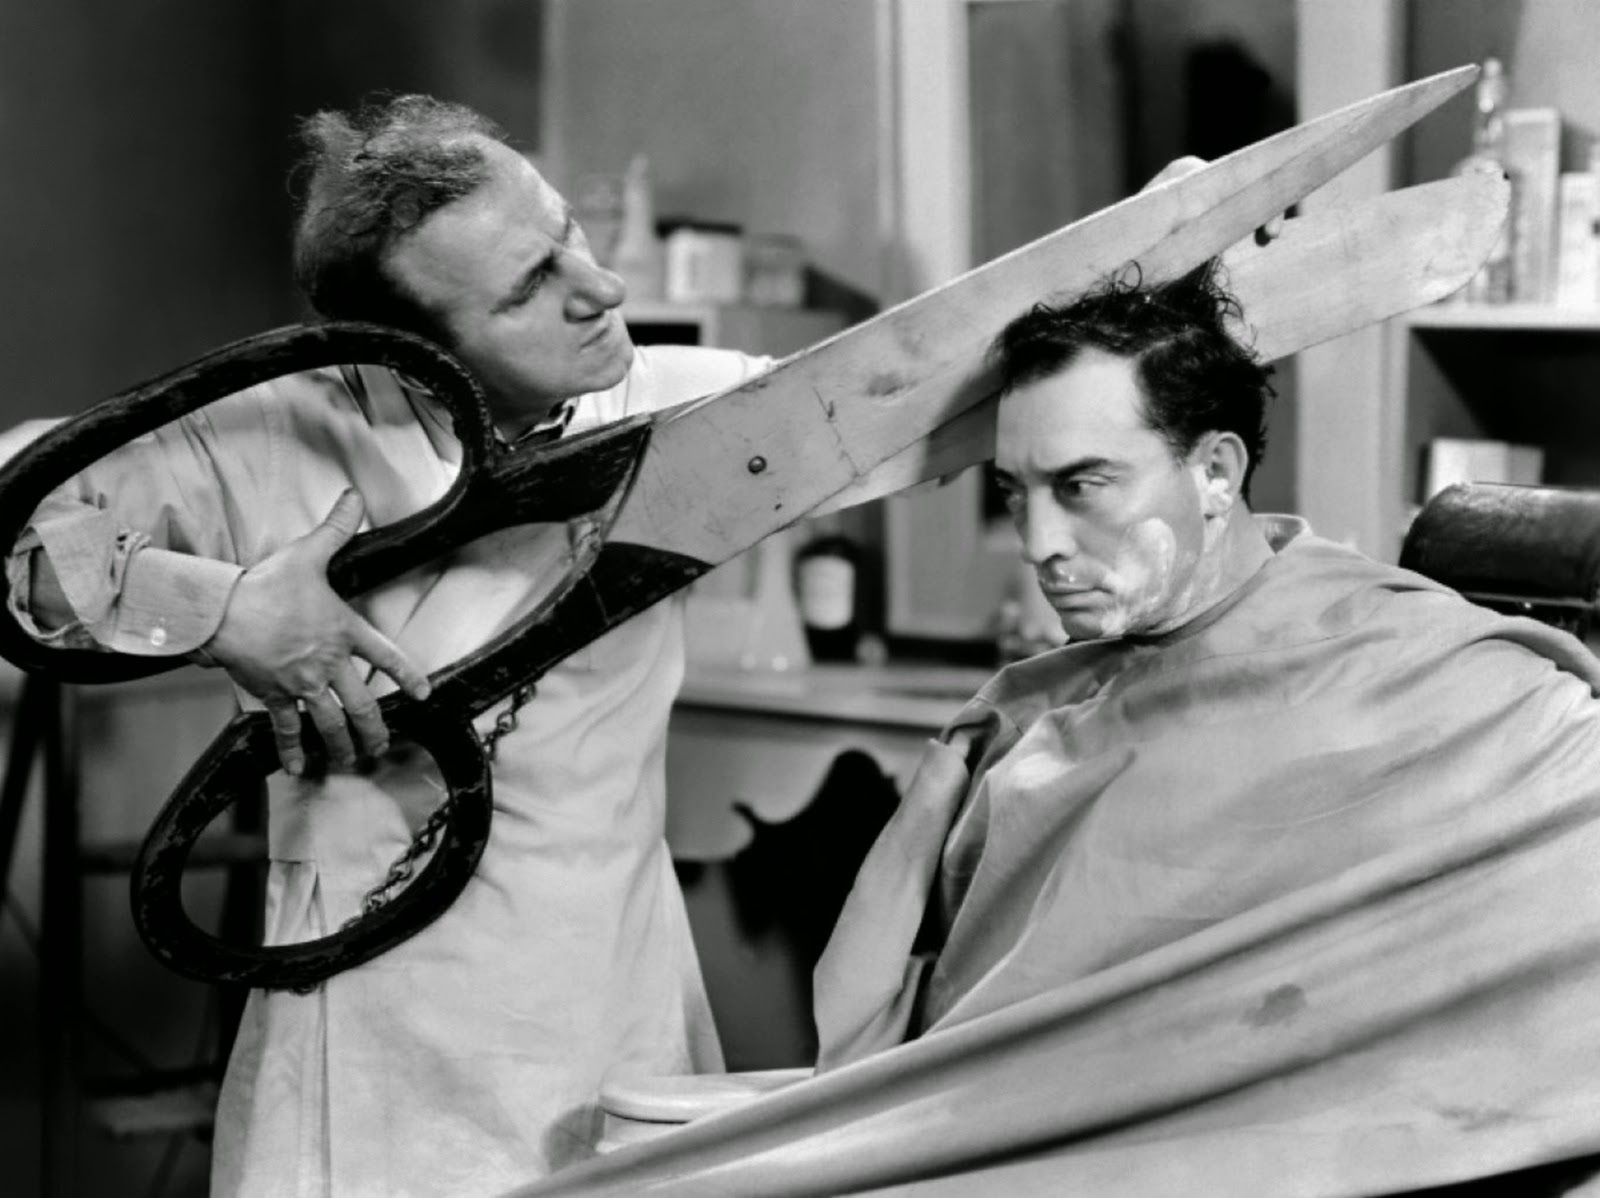 Buster Keaton Jimmy Durante What No Beer comedy